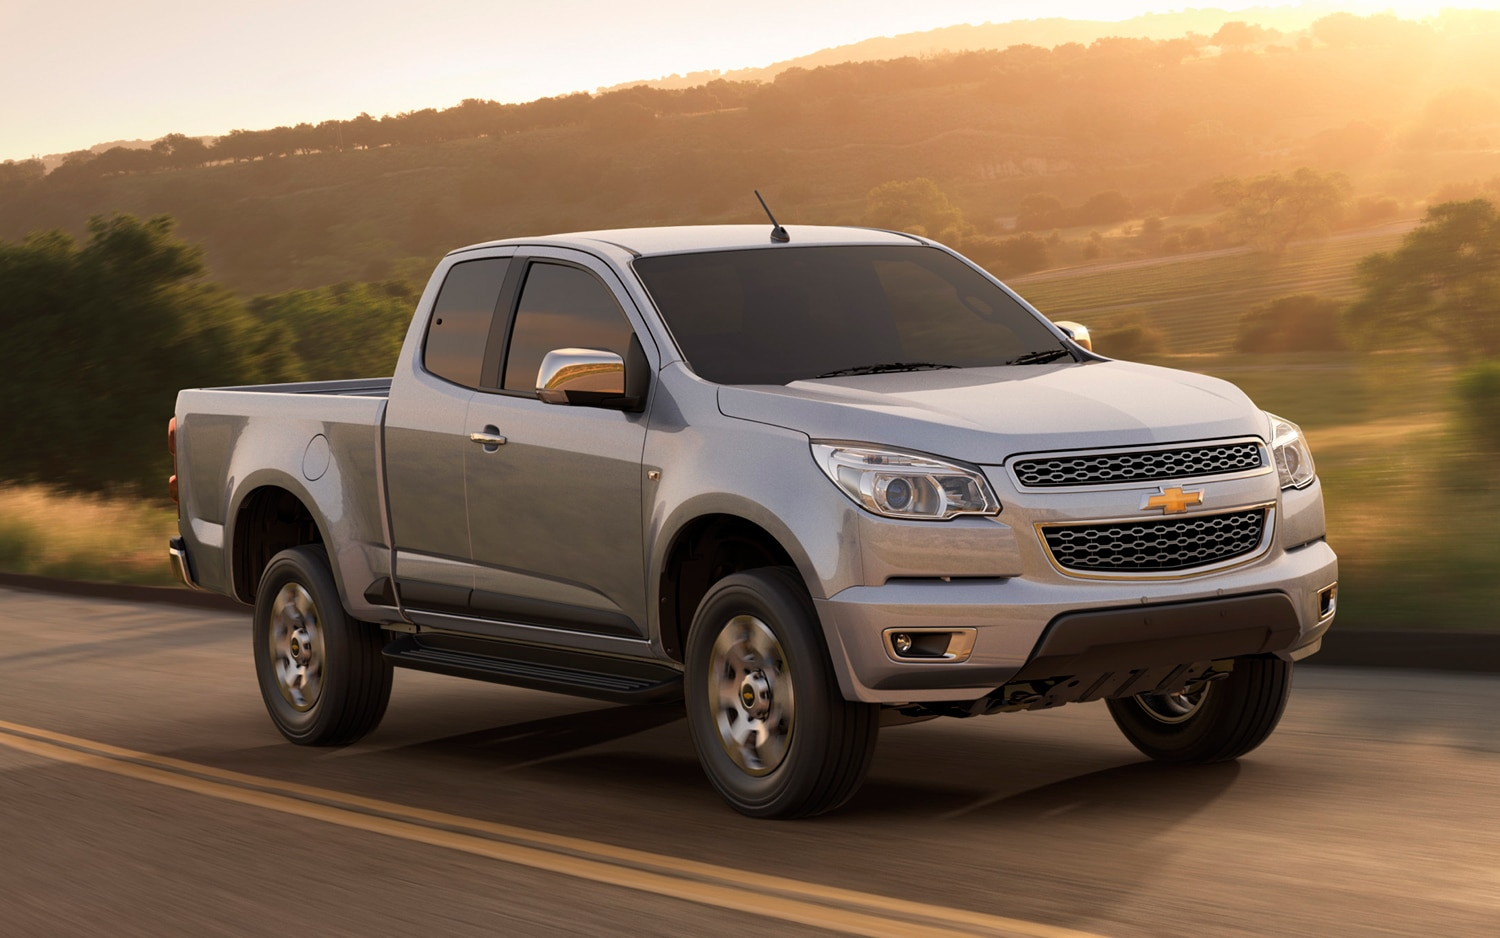 2012 Chevrolet Colorado Front Three Quarter11